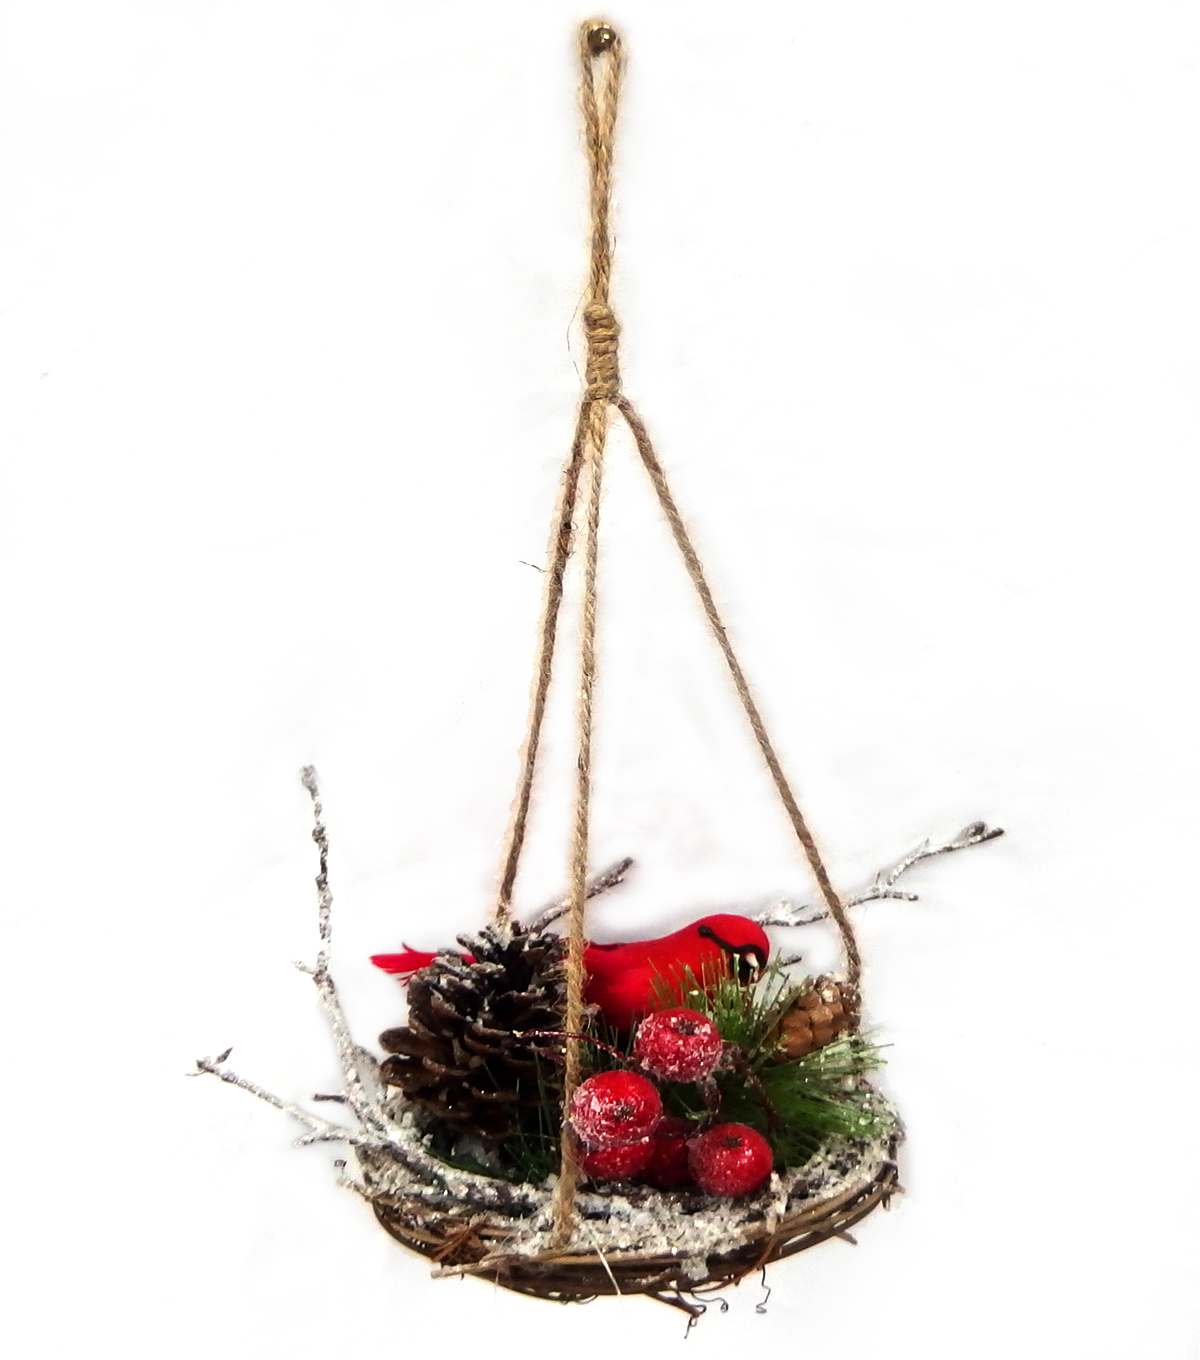 Blooming Holiday Cardinal With Pinecone And Berries In Nest